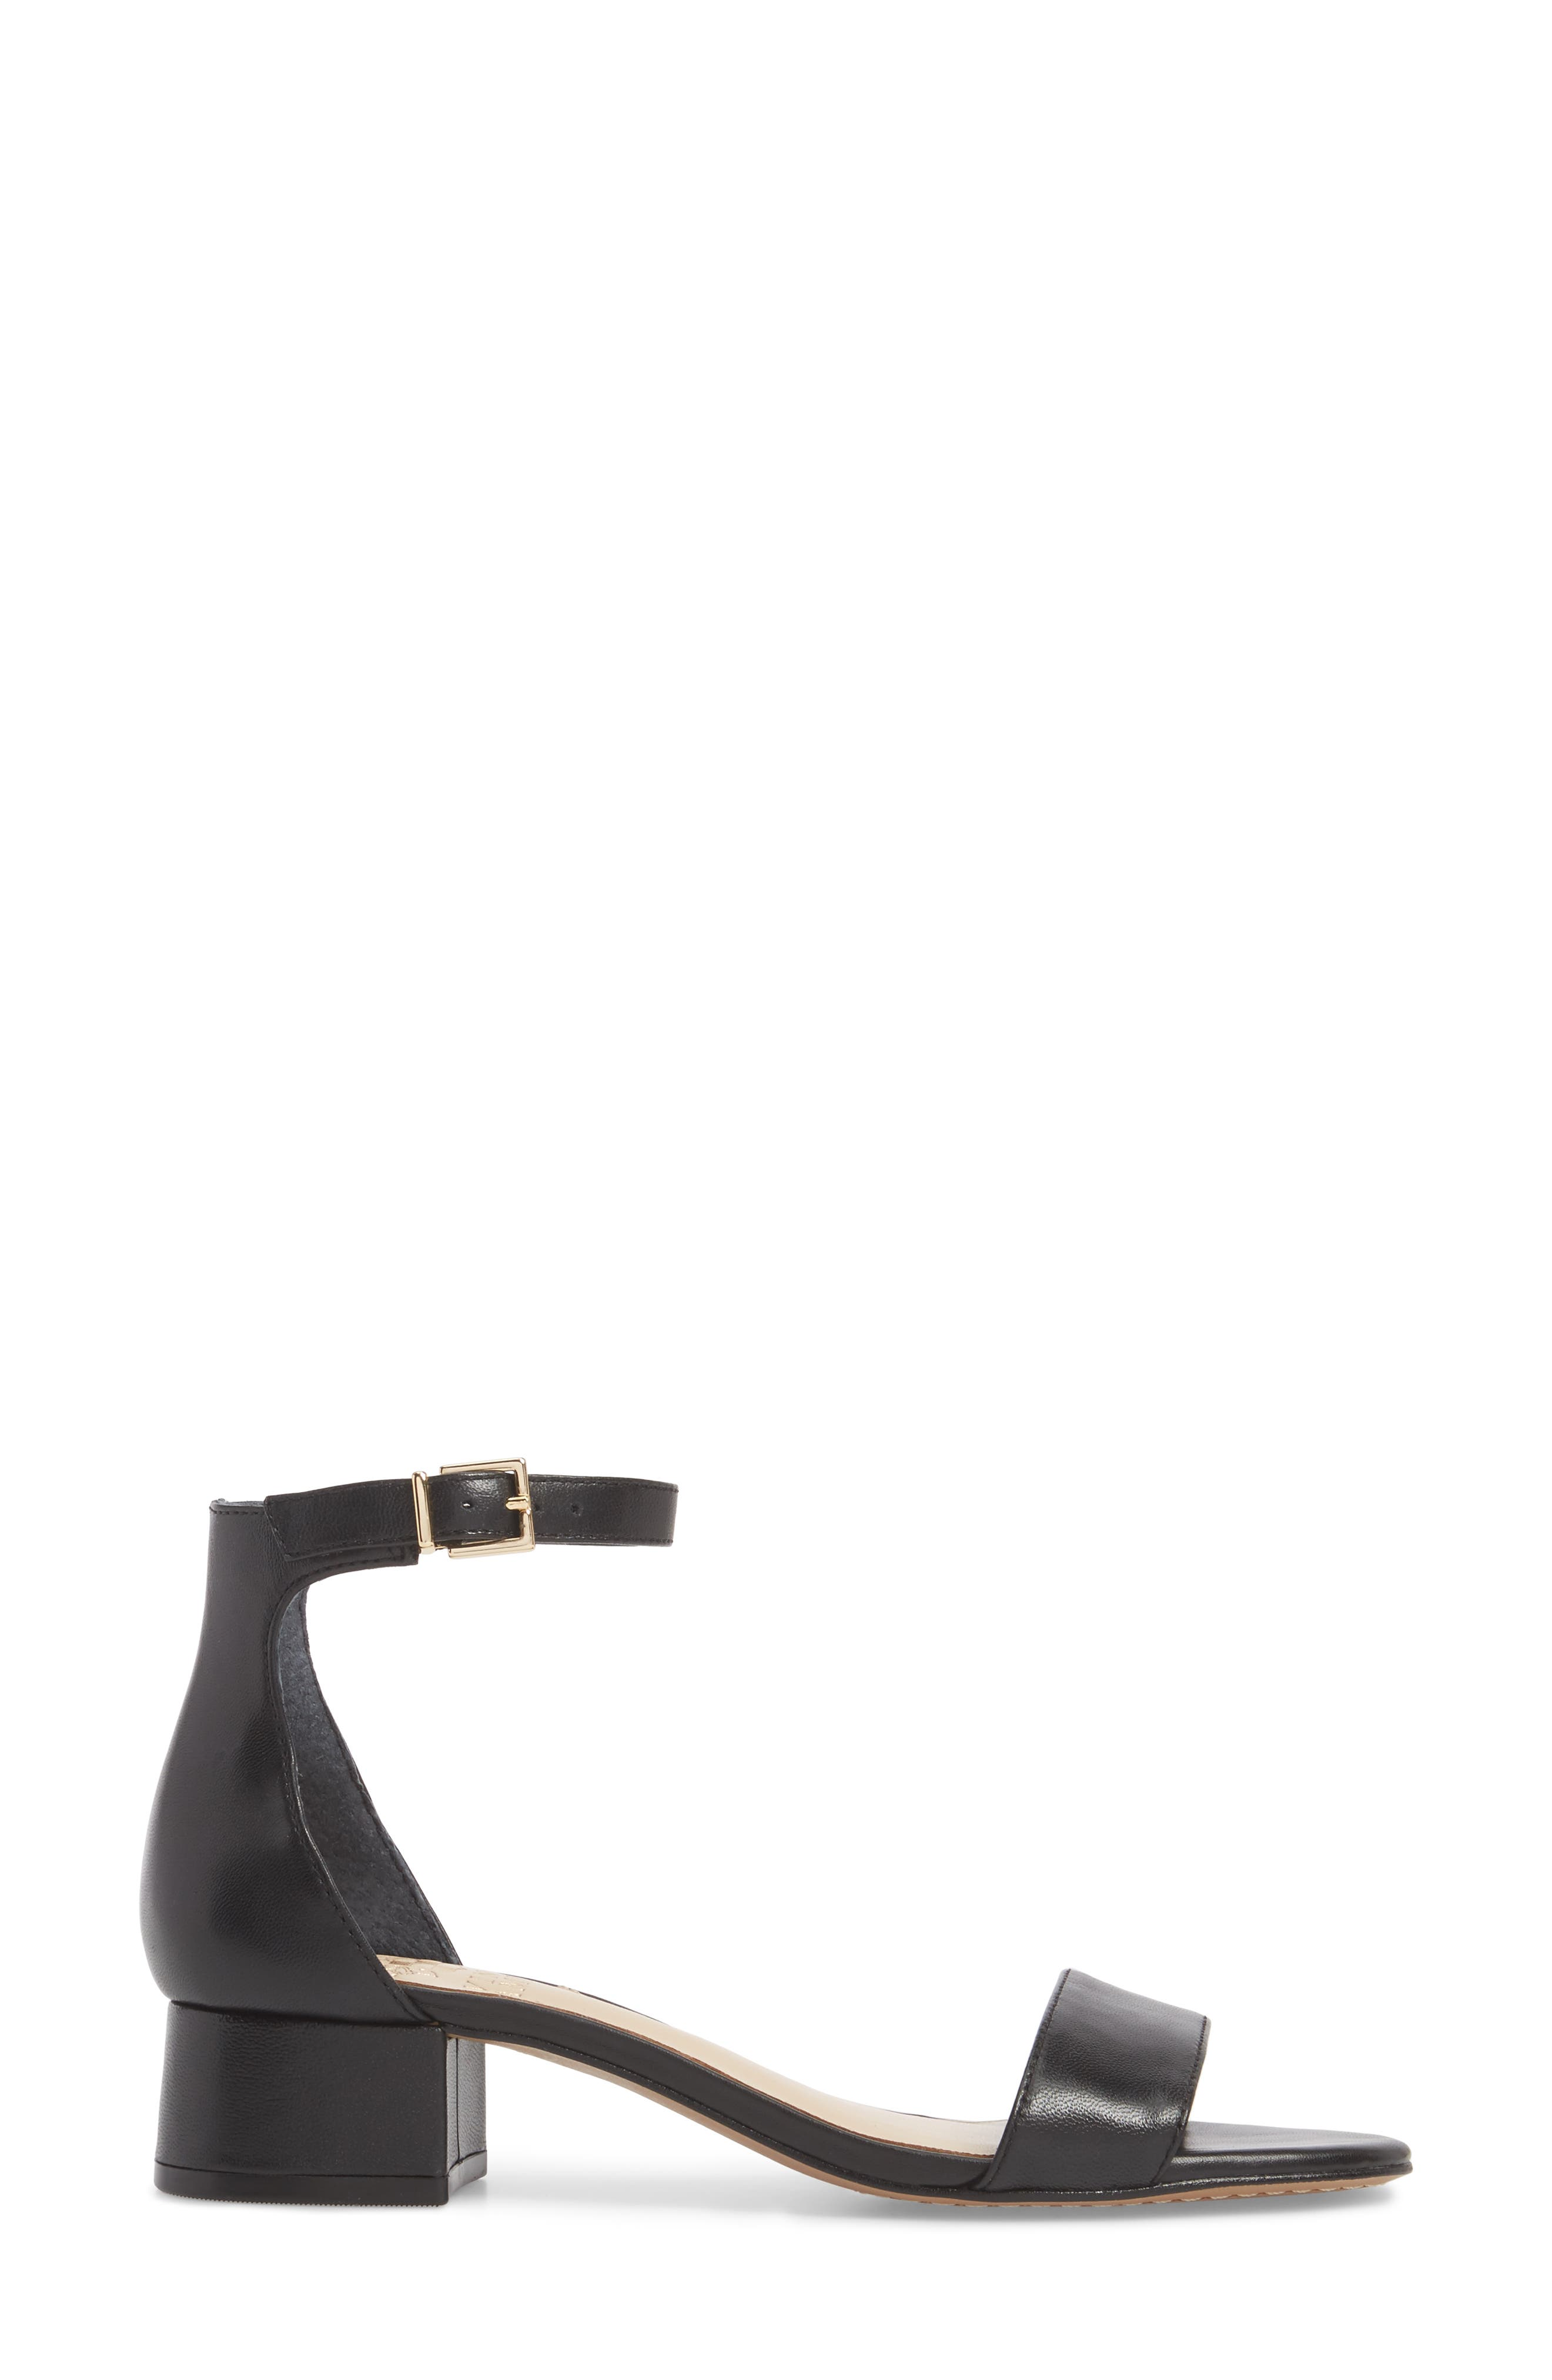 VINCE CAMUTO, Sasseta Sandal, Alternate thumbnail 3, color, BLACK LEATHER